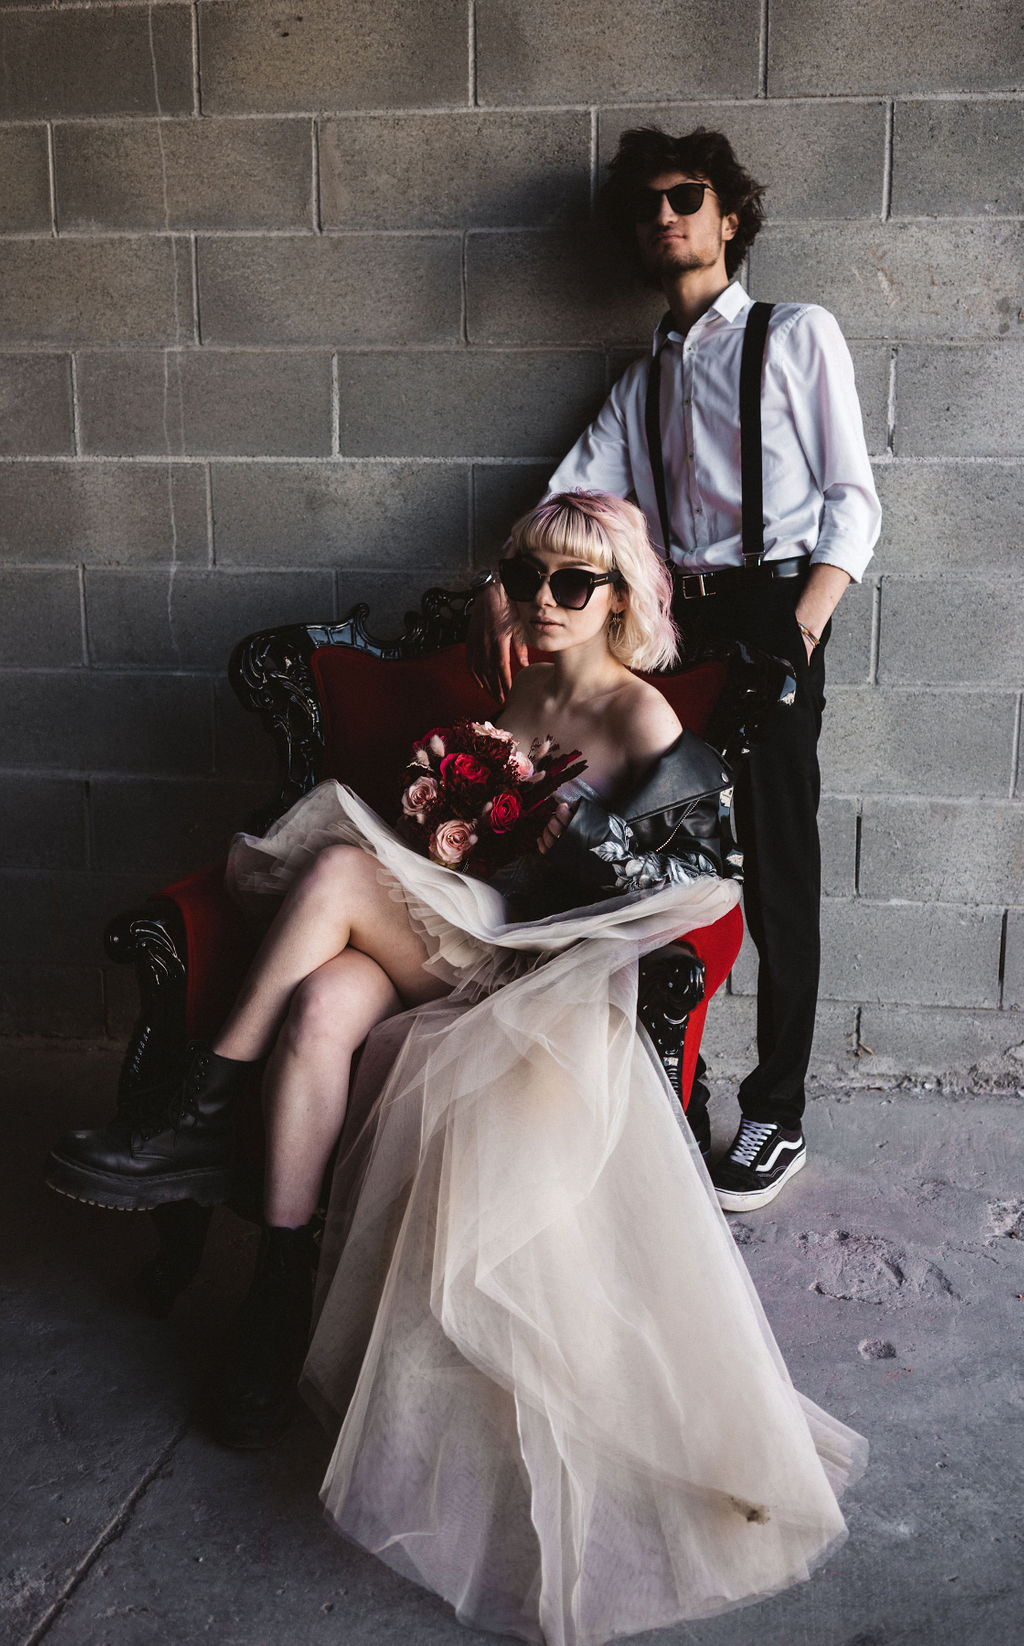 modern industrial wedding - alternative wedding - unconventional wedding - edgy wedding - cool wedding